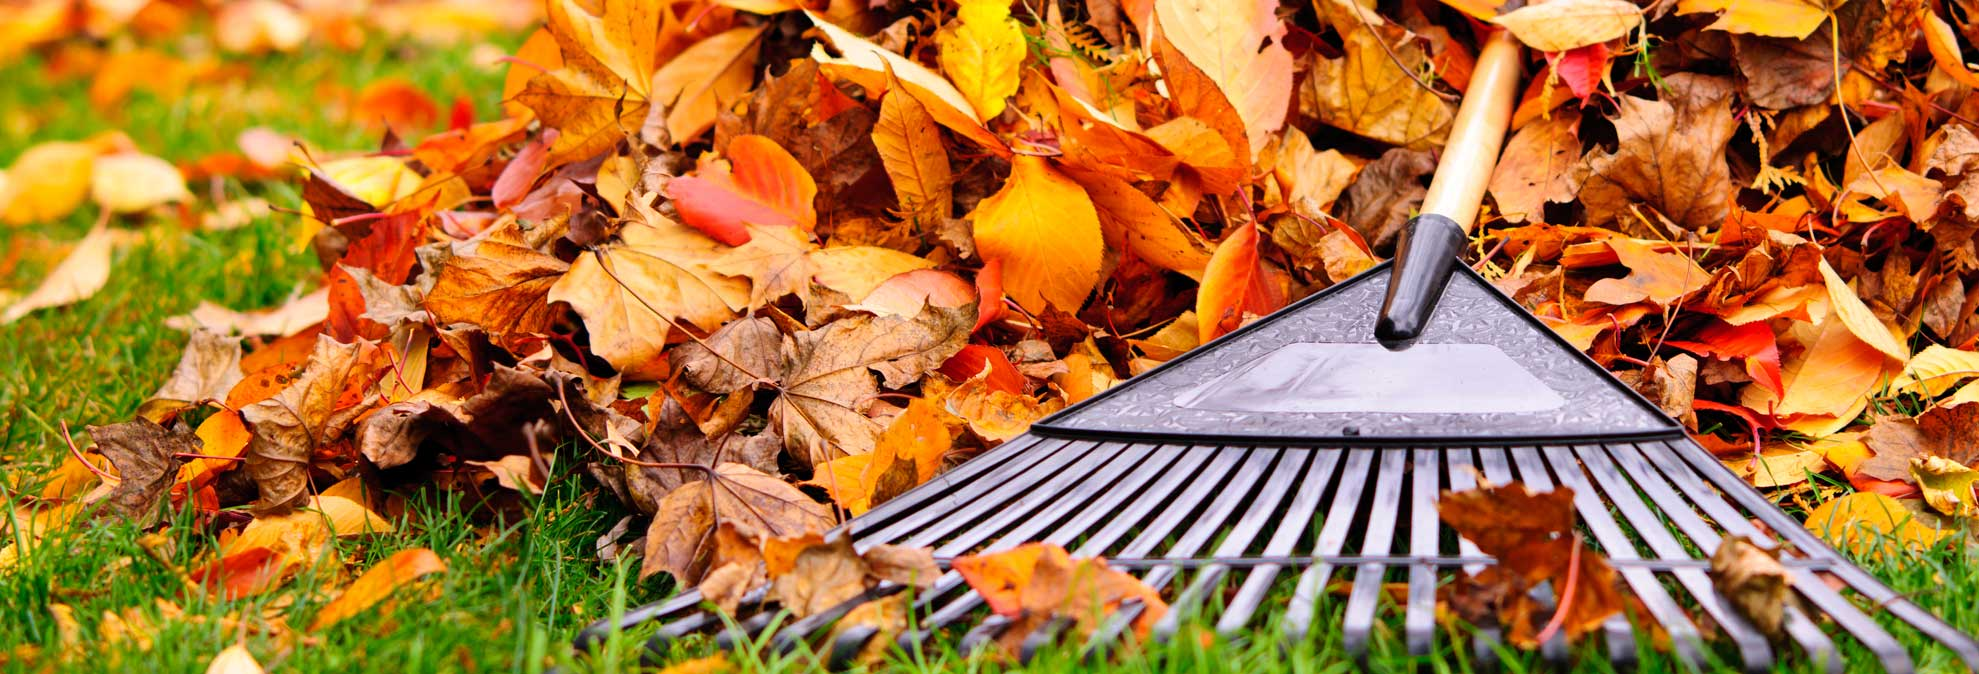 Clean Cars And Credit >> Best Leaf Blowers and Tips for Fall Leaf Removal - Consumer Reports